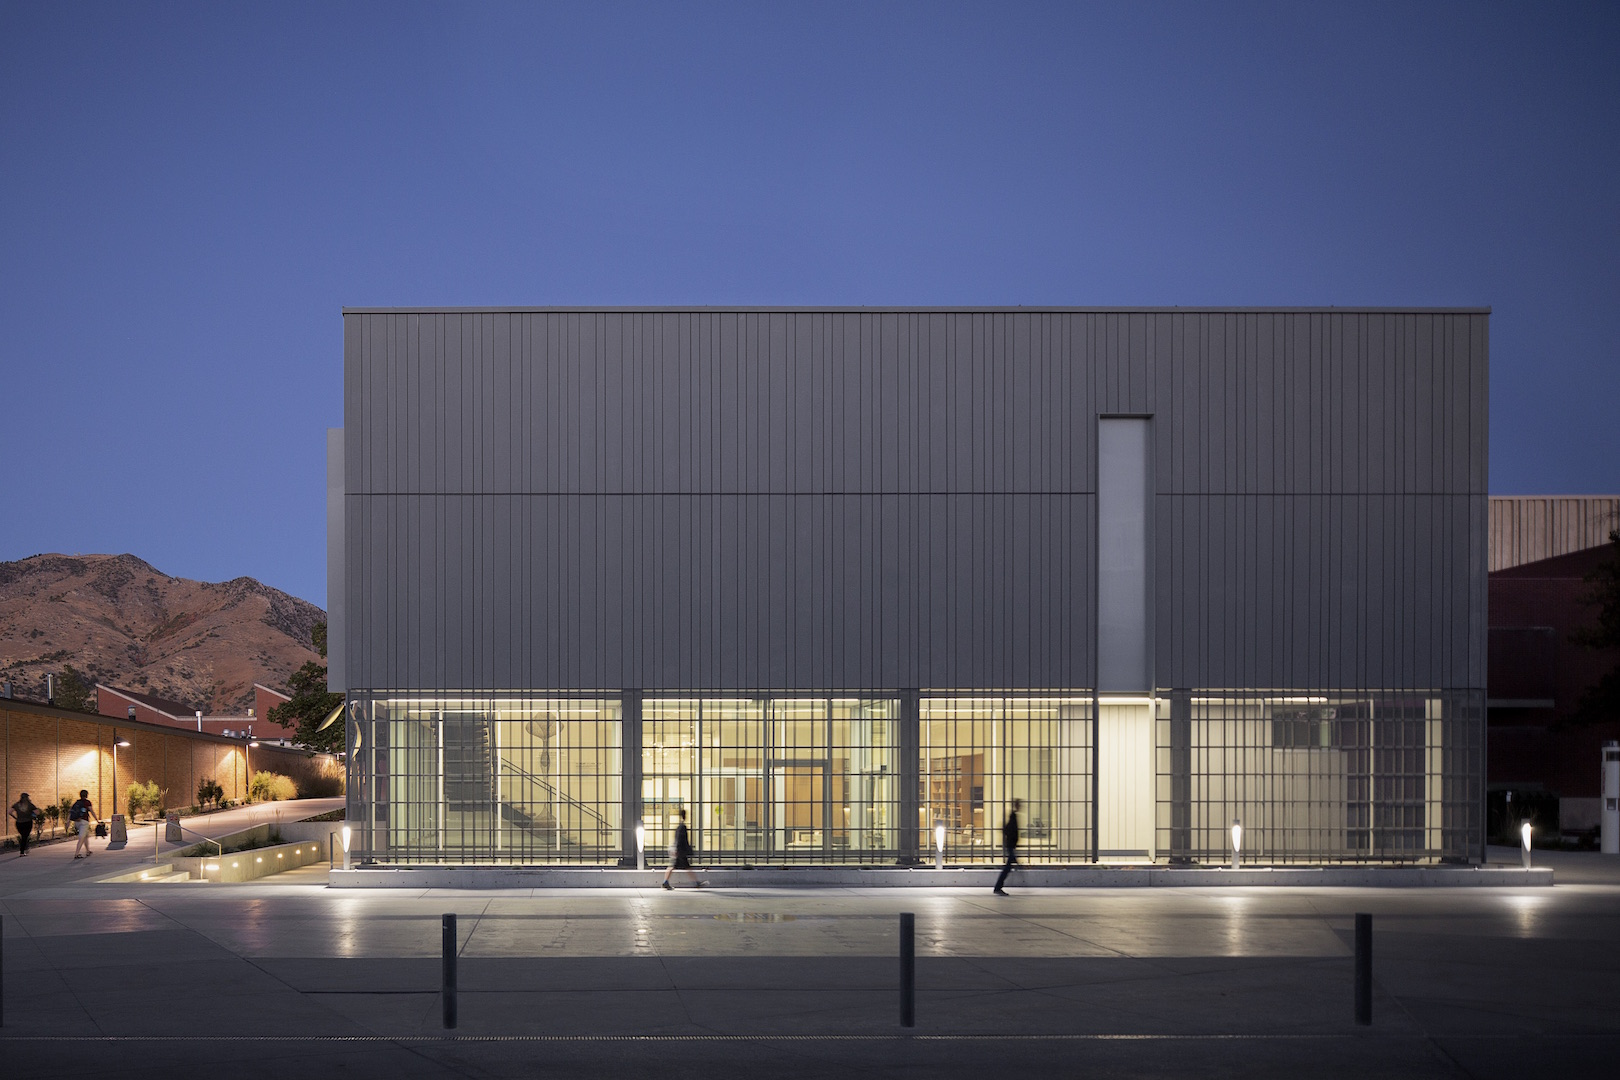 Nora Eccles Harrison Museum of Art. 2018 building renovation and expansion. Night time exterior.